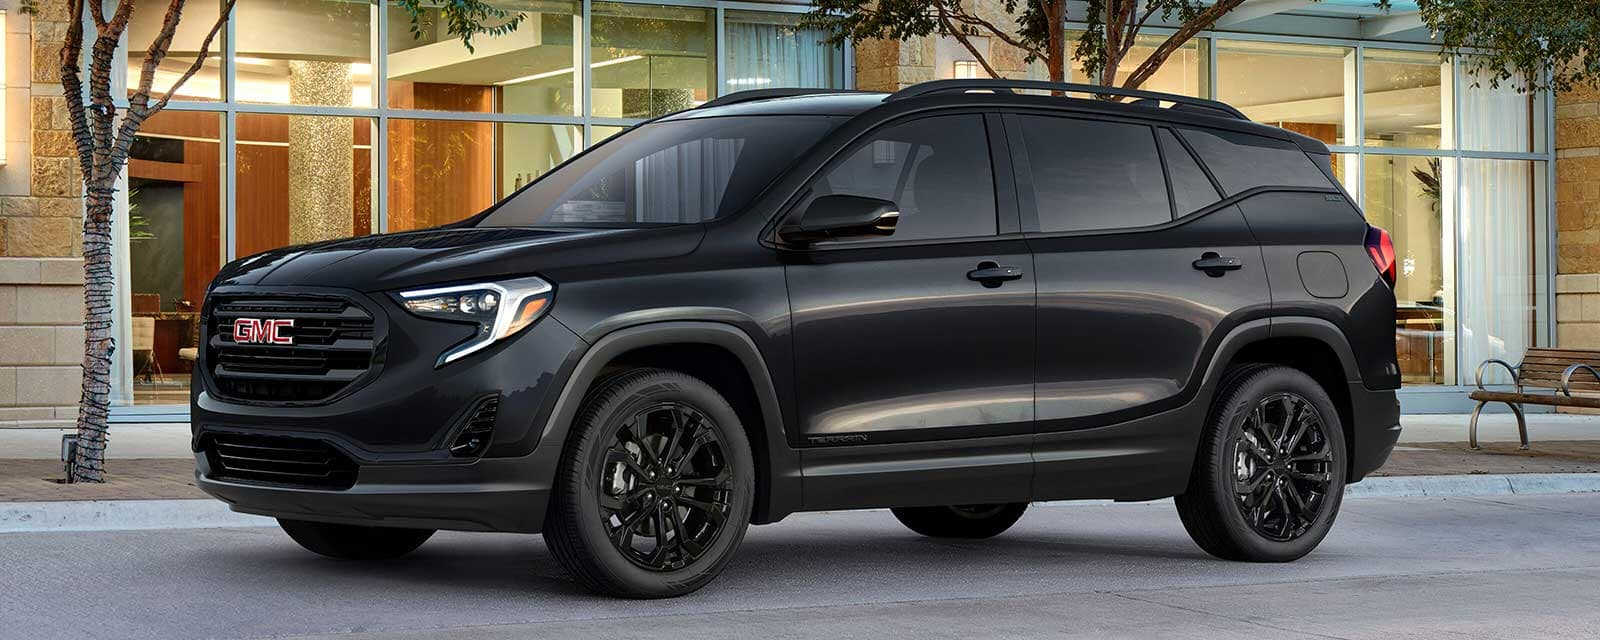 2020 GMC Terrain special editions elevation edition on a bright city block